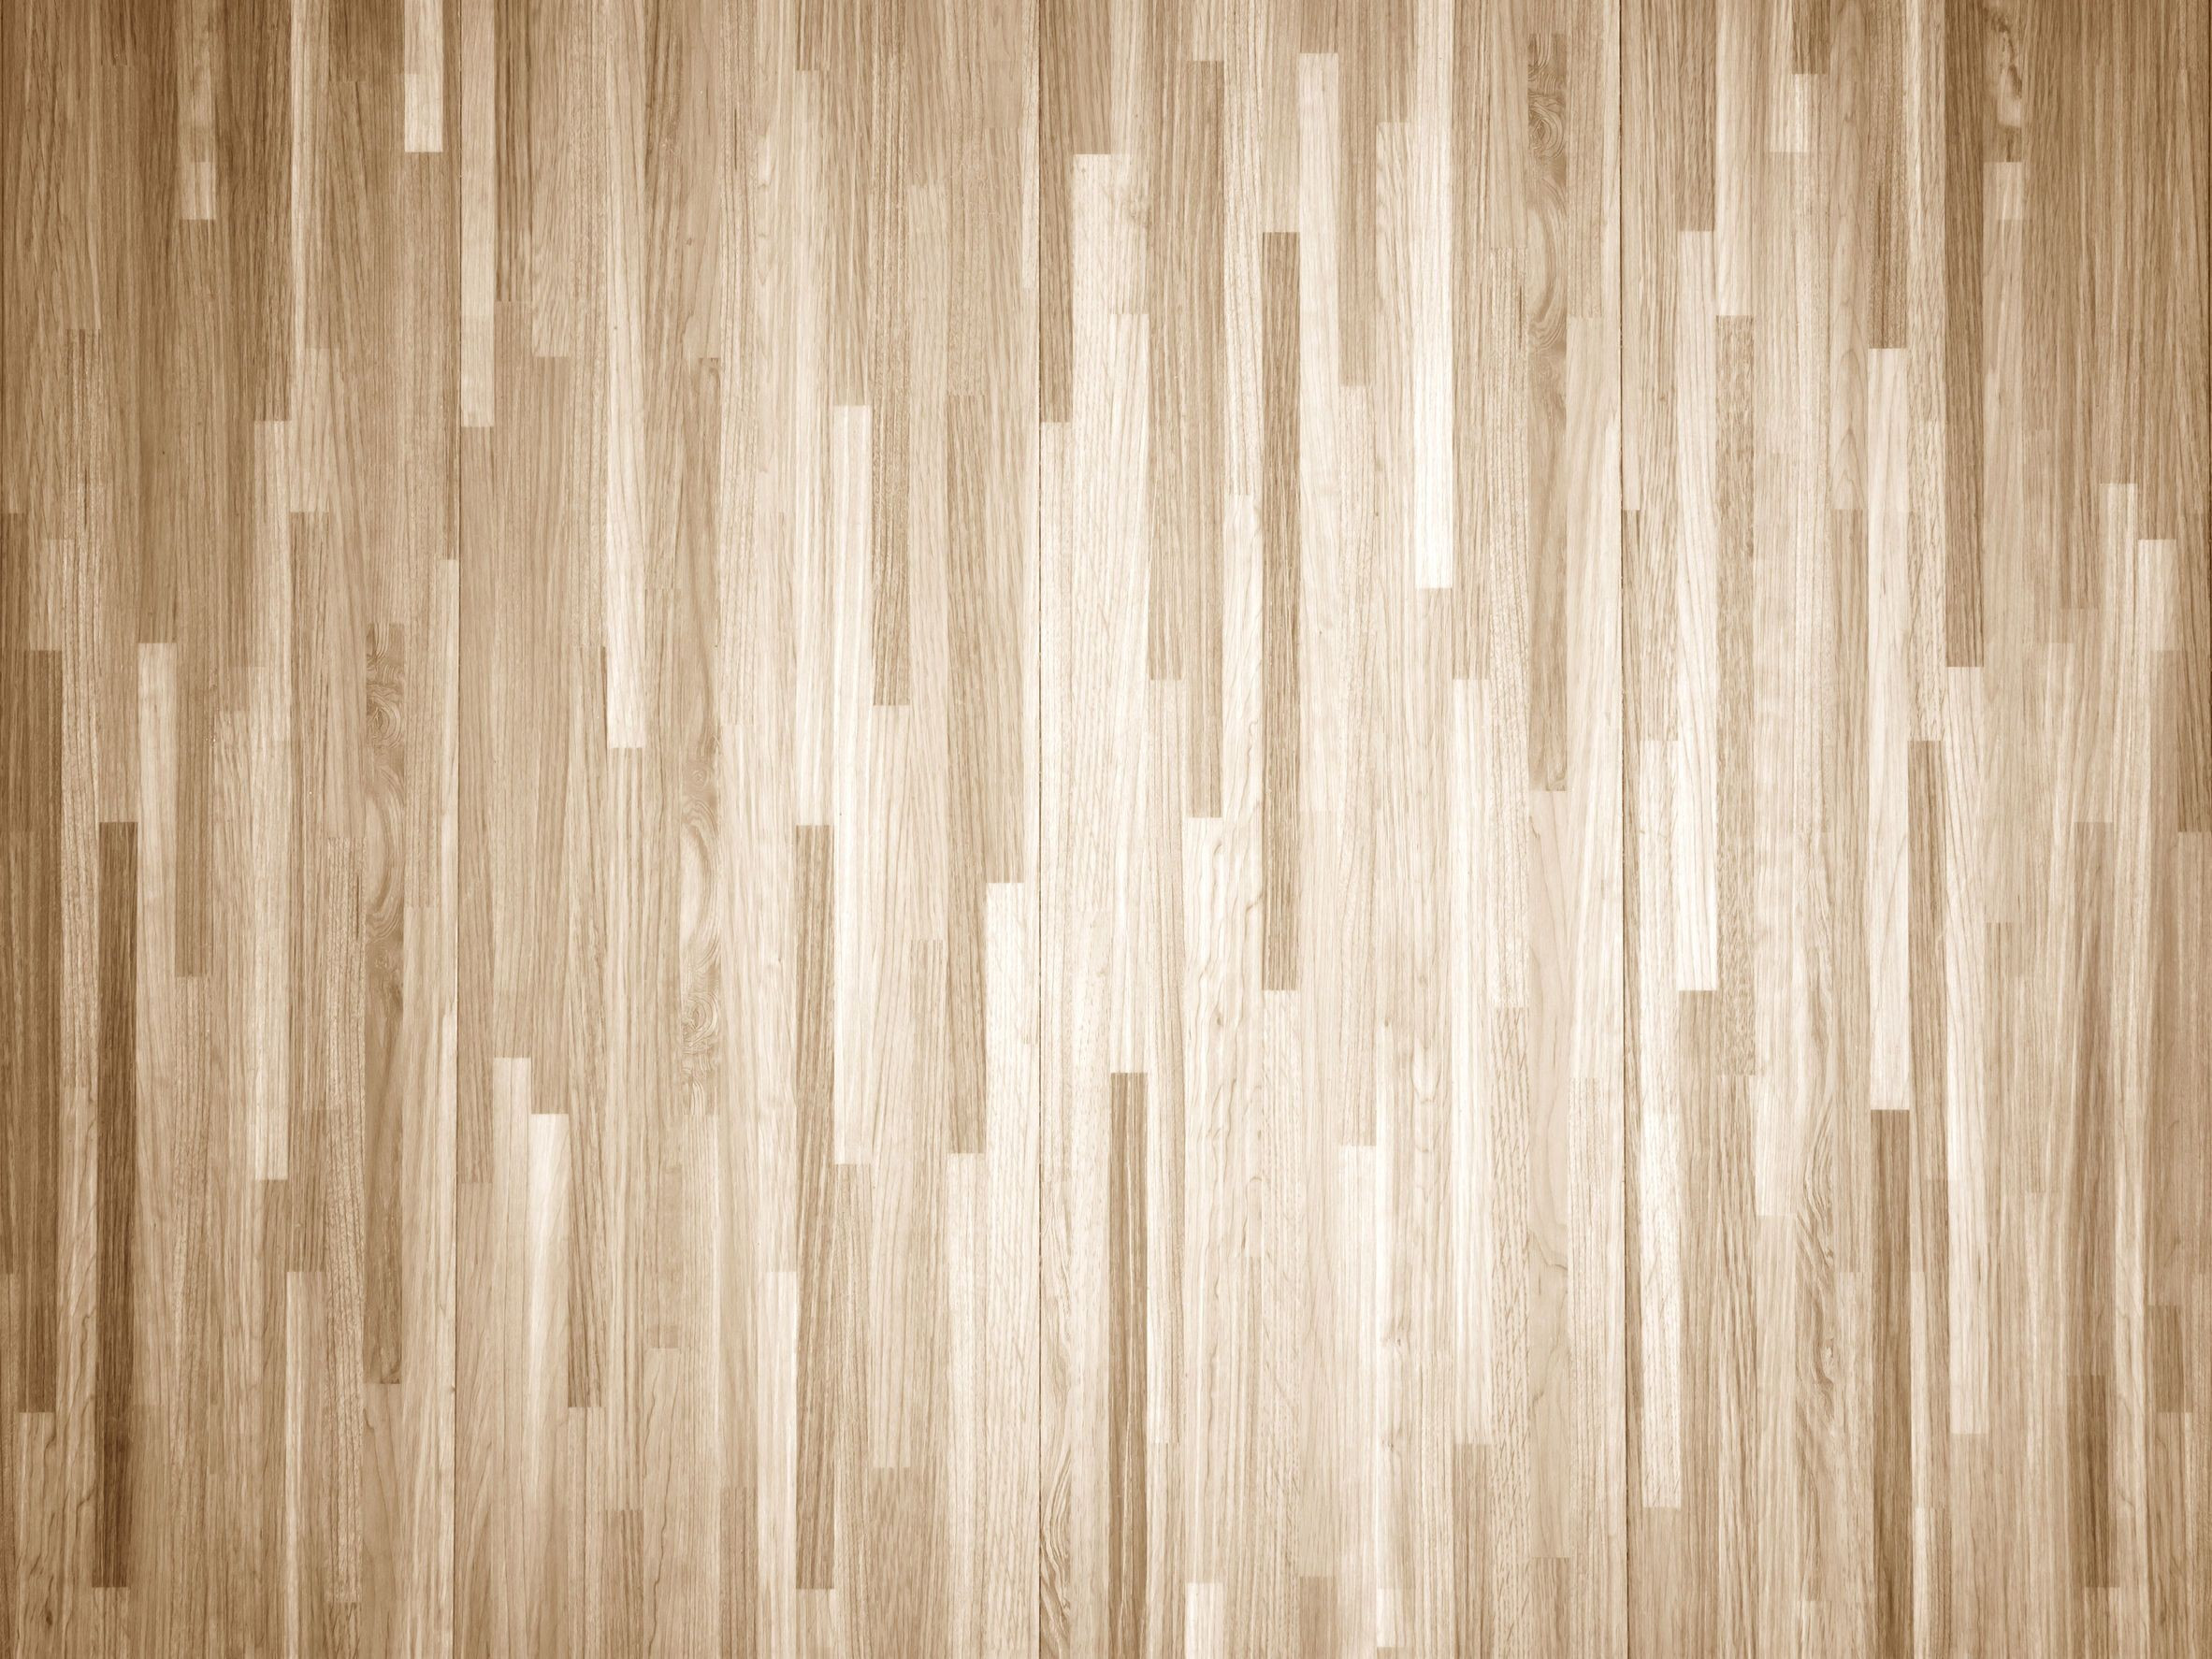 richmond hardwood flooring of luxury hardwood floor patterns home design idea in luxury hardwood floor patterns you